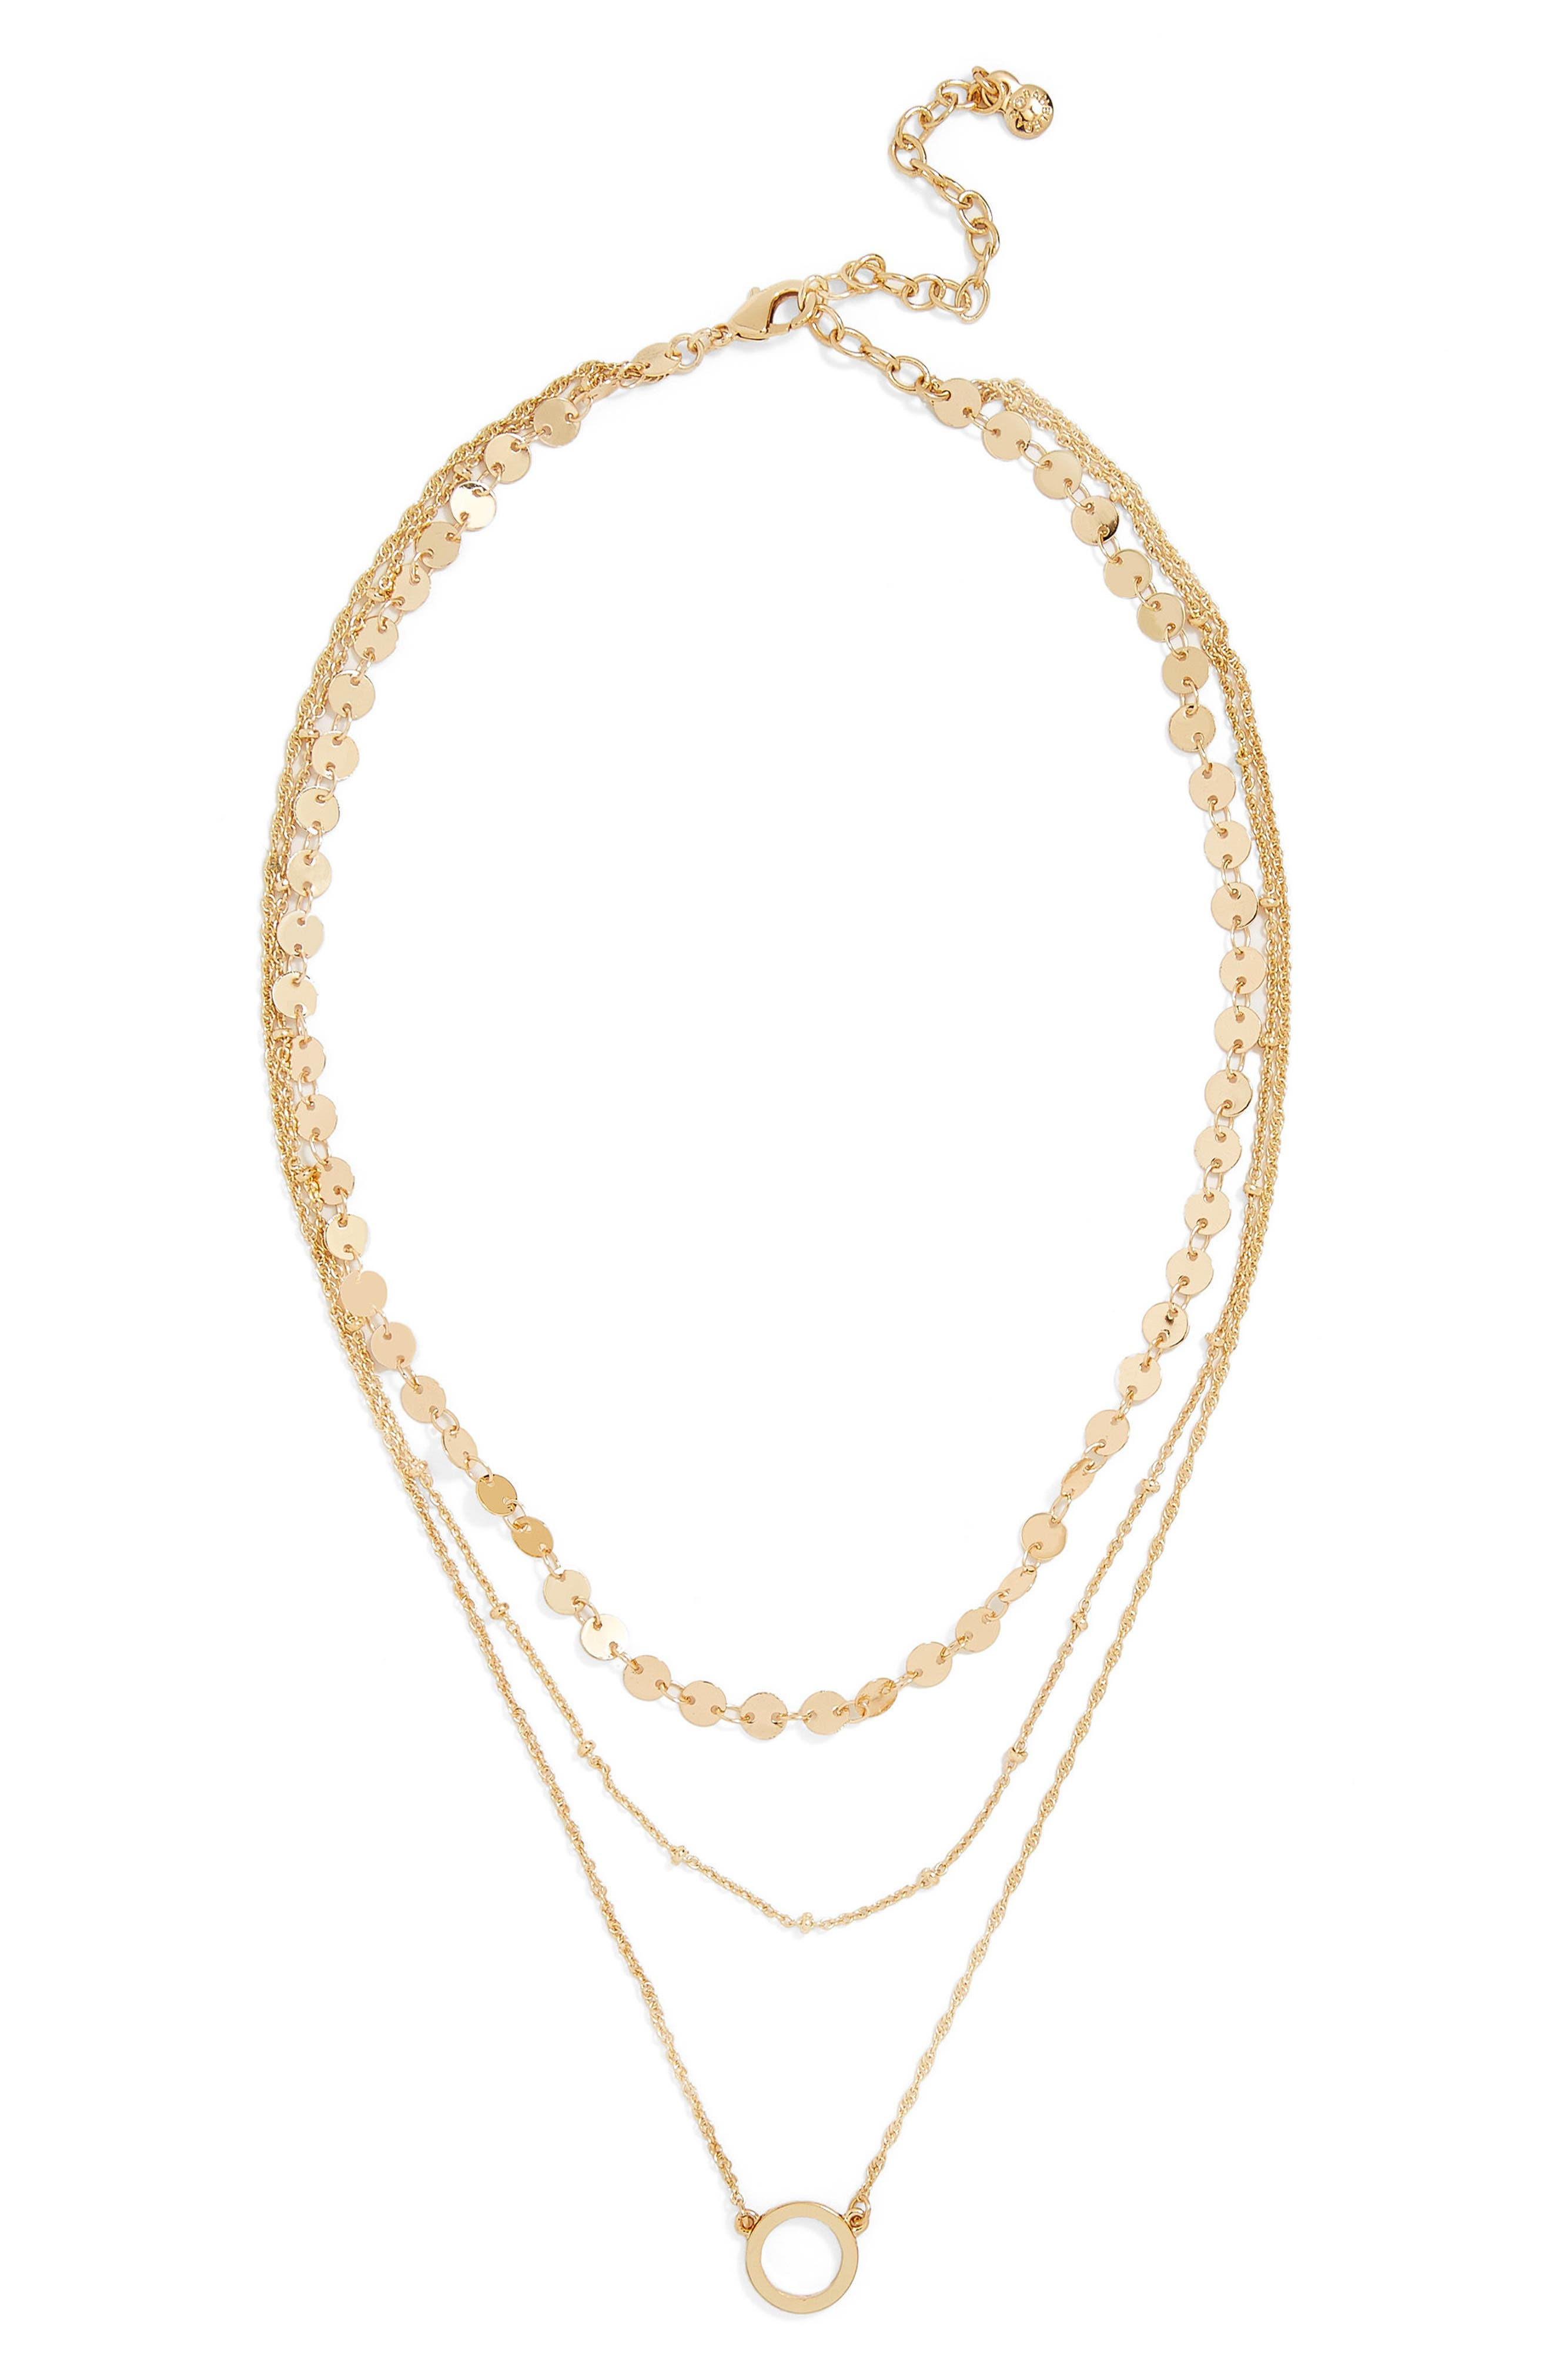 Adrielle Triple Strand Necklace,                         Main,                         color, Gold